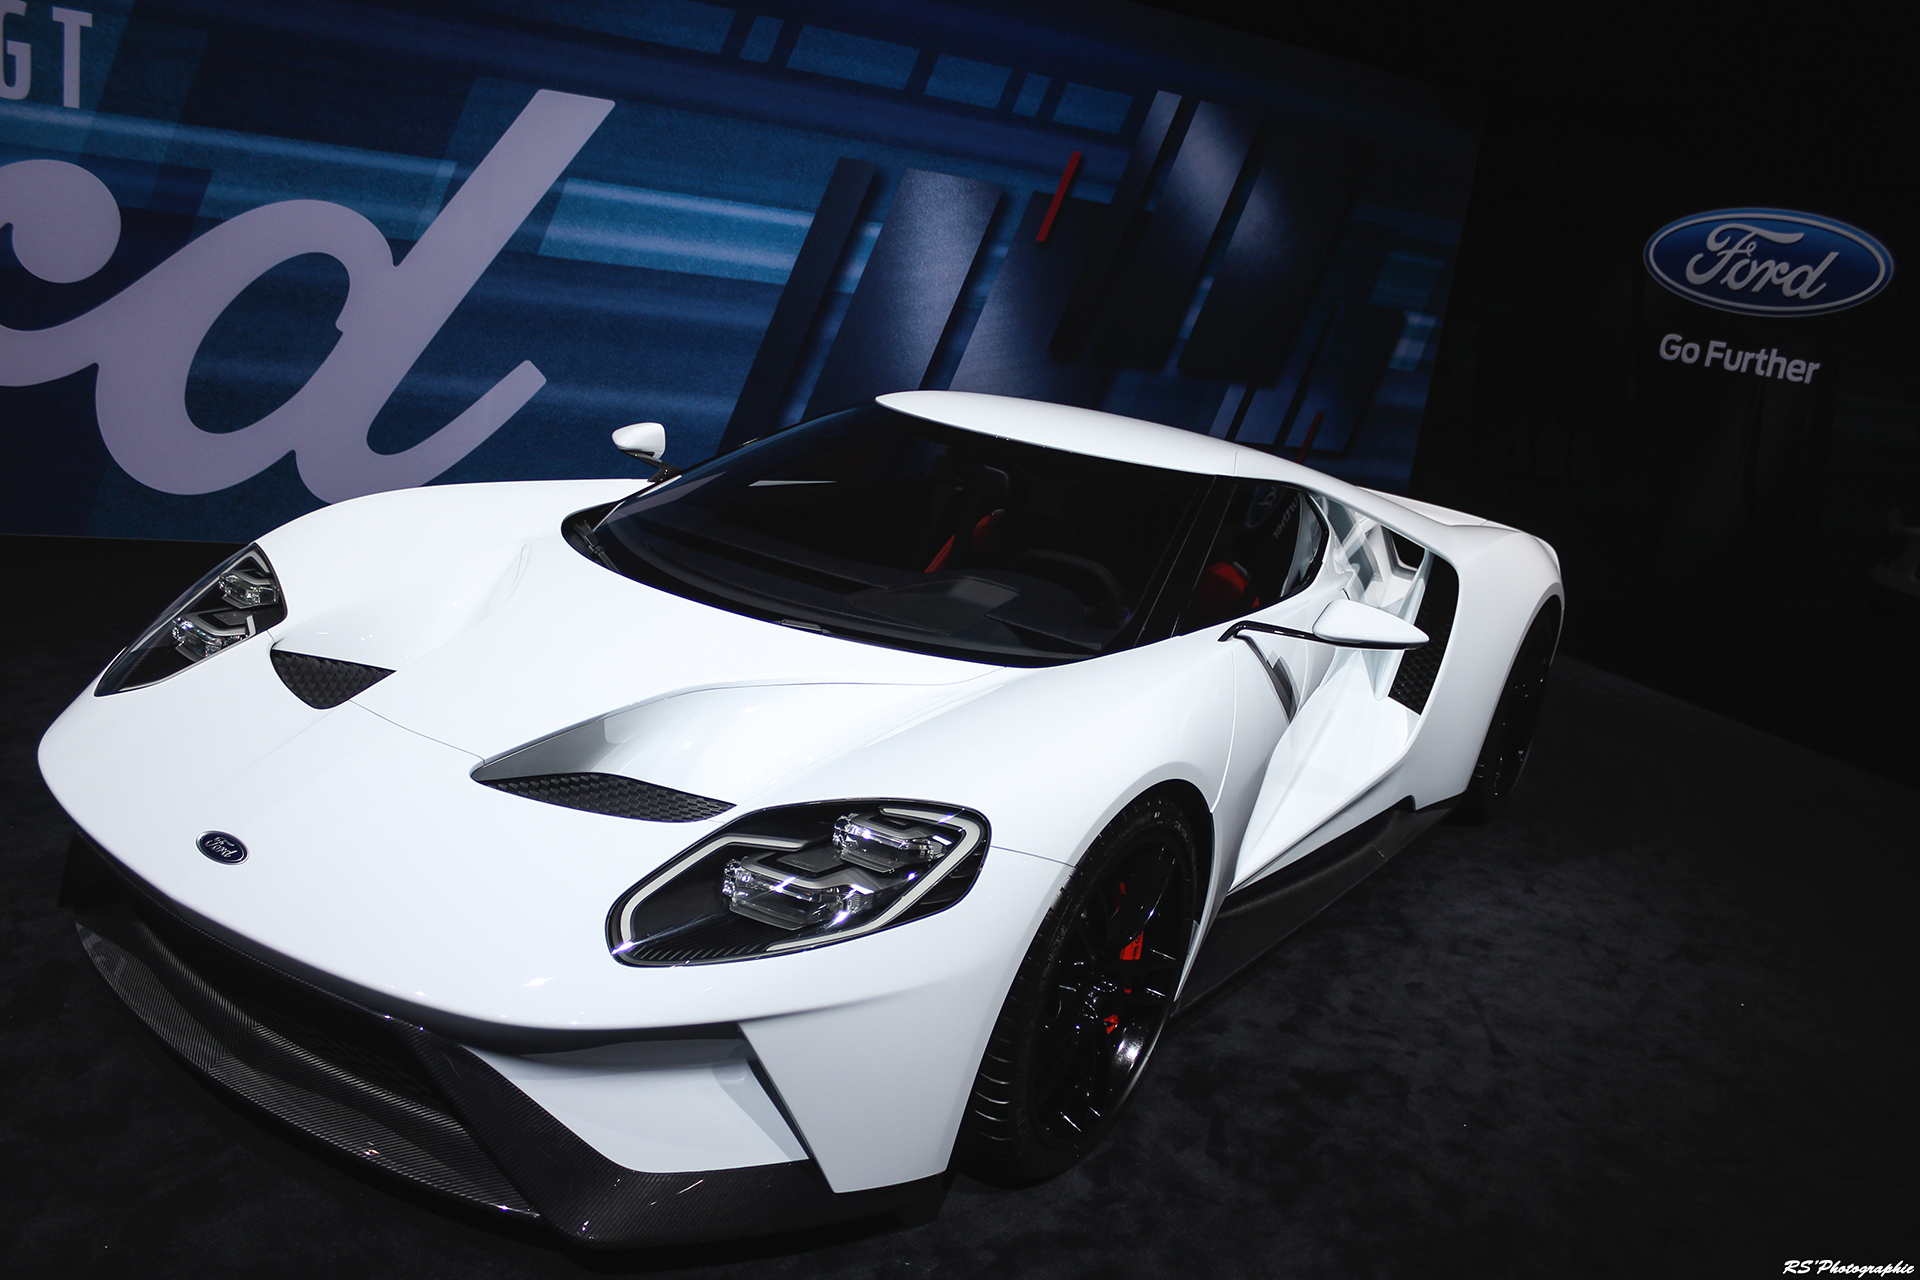 Ford GT - front - Geneva 2016 - Arnaud Demasier RS Photographie